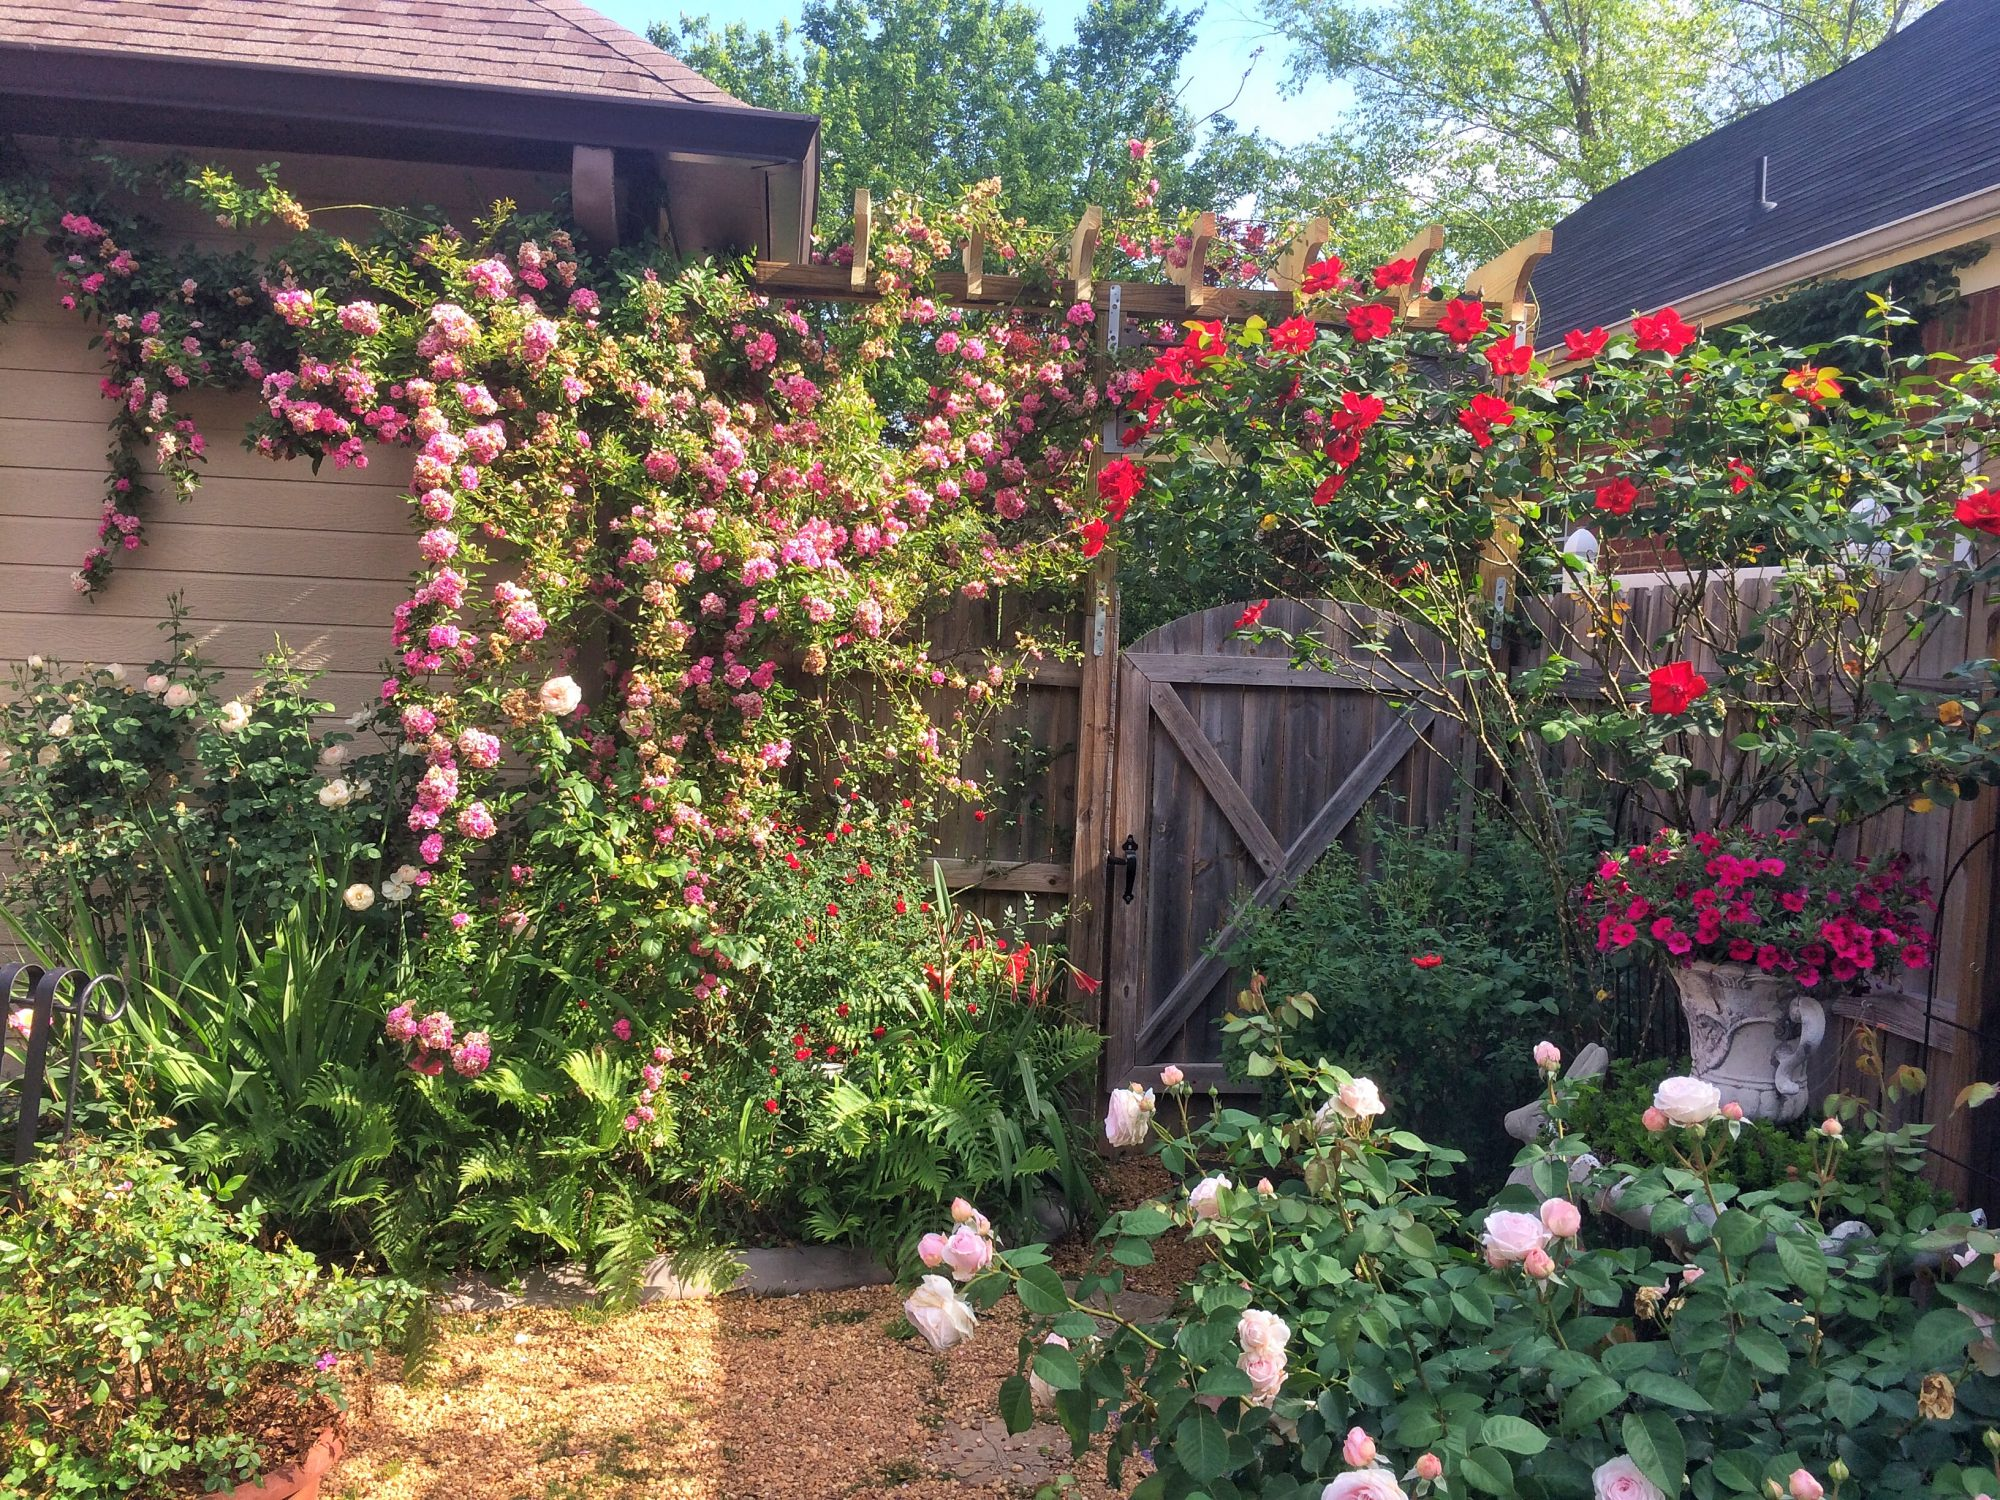 Groovy Grow Roses Like A Redneck Southern Living Download Free Architecture Designs Intelgarnamadebymaigaardcom